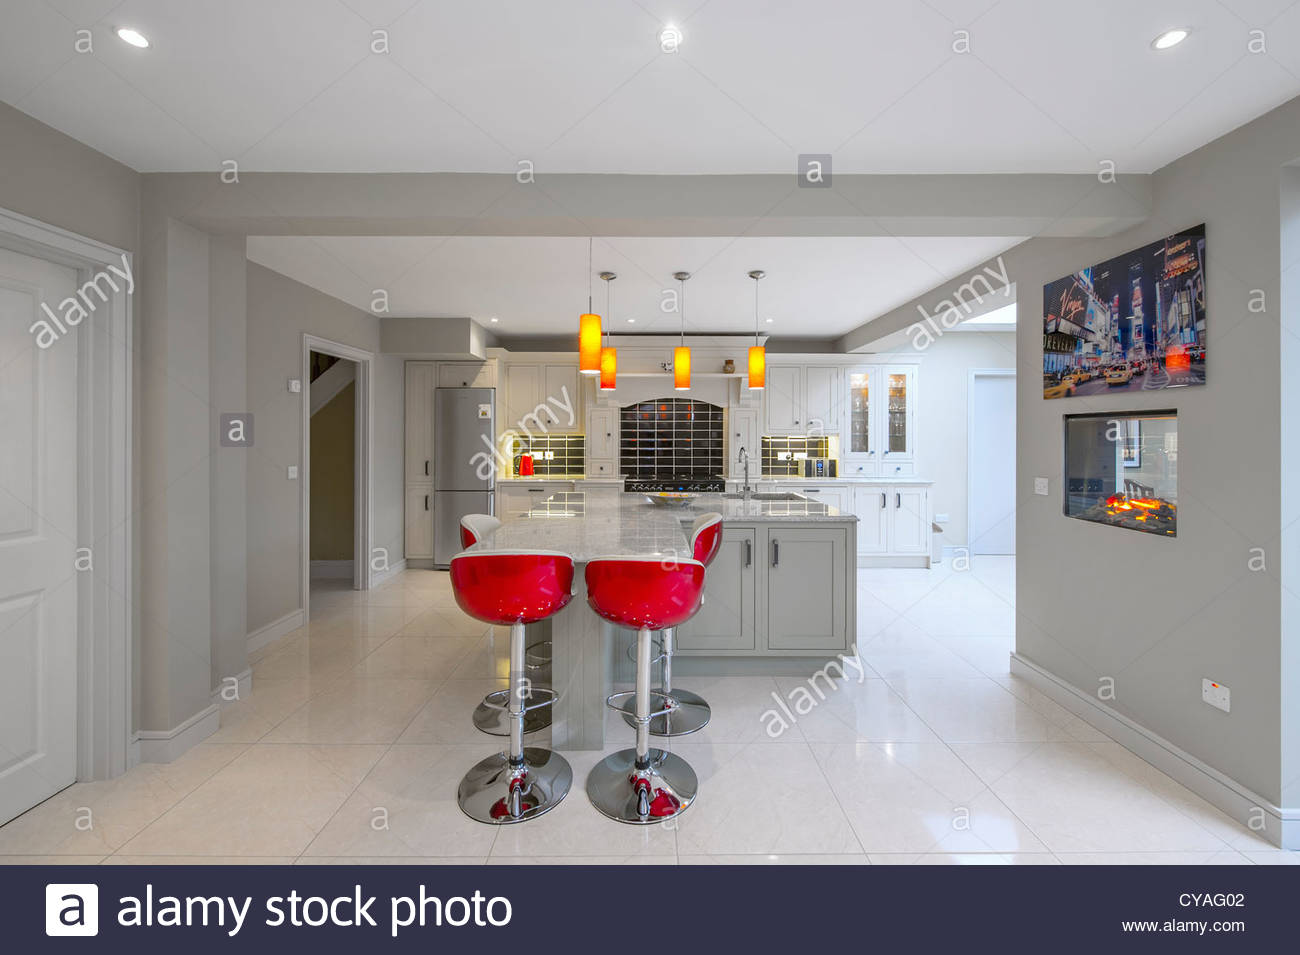 Modern Kitchen Dining Room Interior Spaces Stock Photo Royalty Free Image 51248514 Alamy